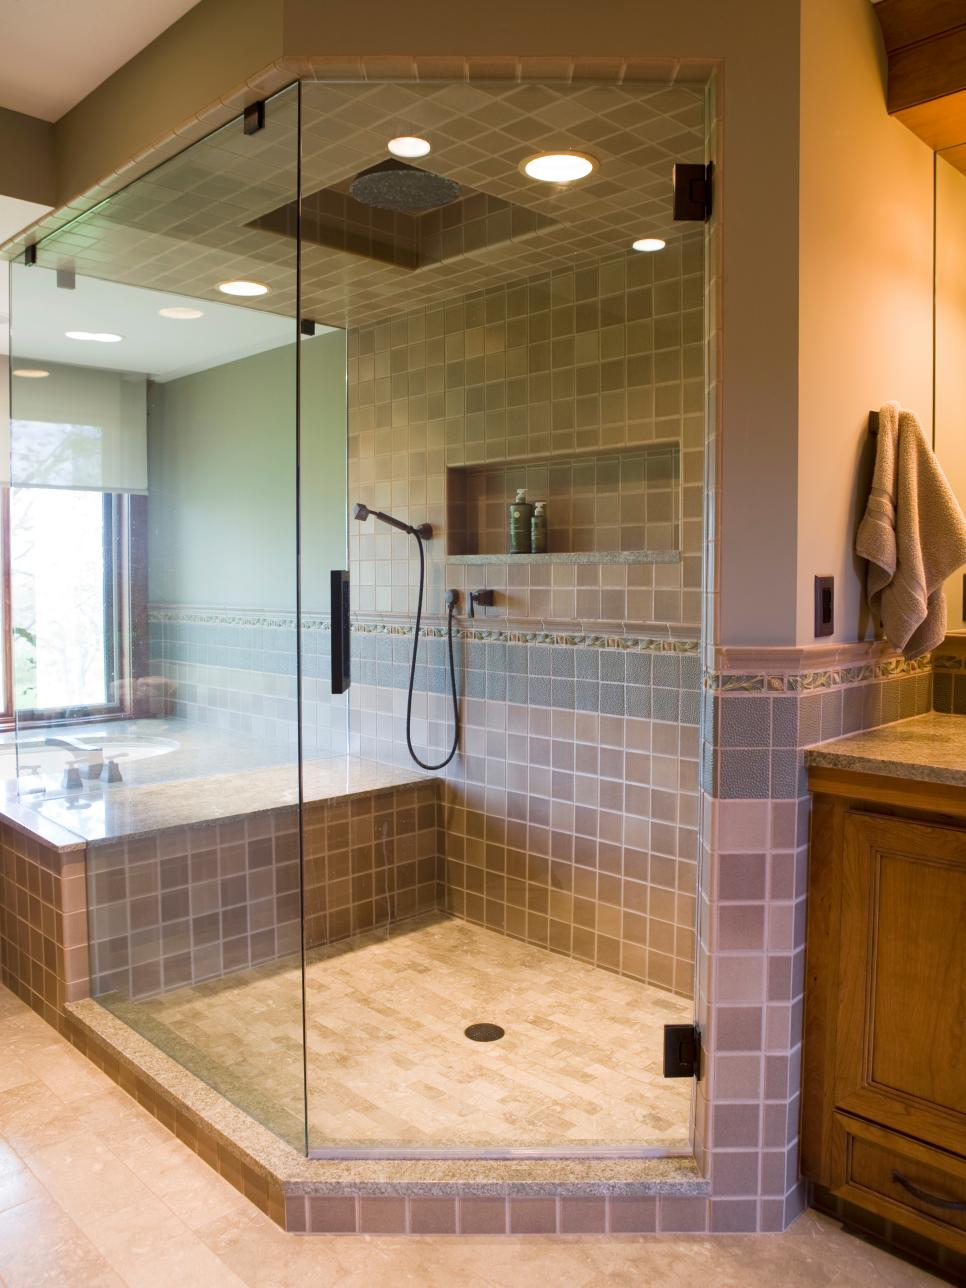 24 glass shower bathroom designs decorating ideas for Custom bathroom design